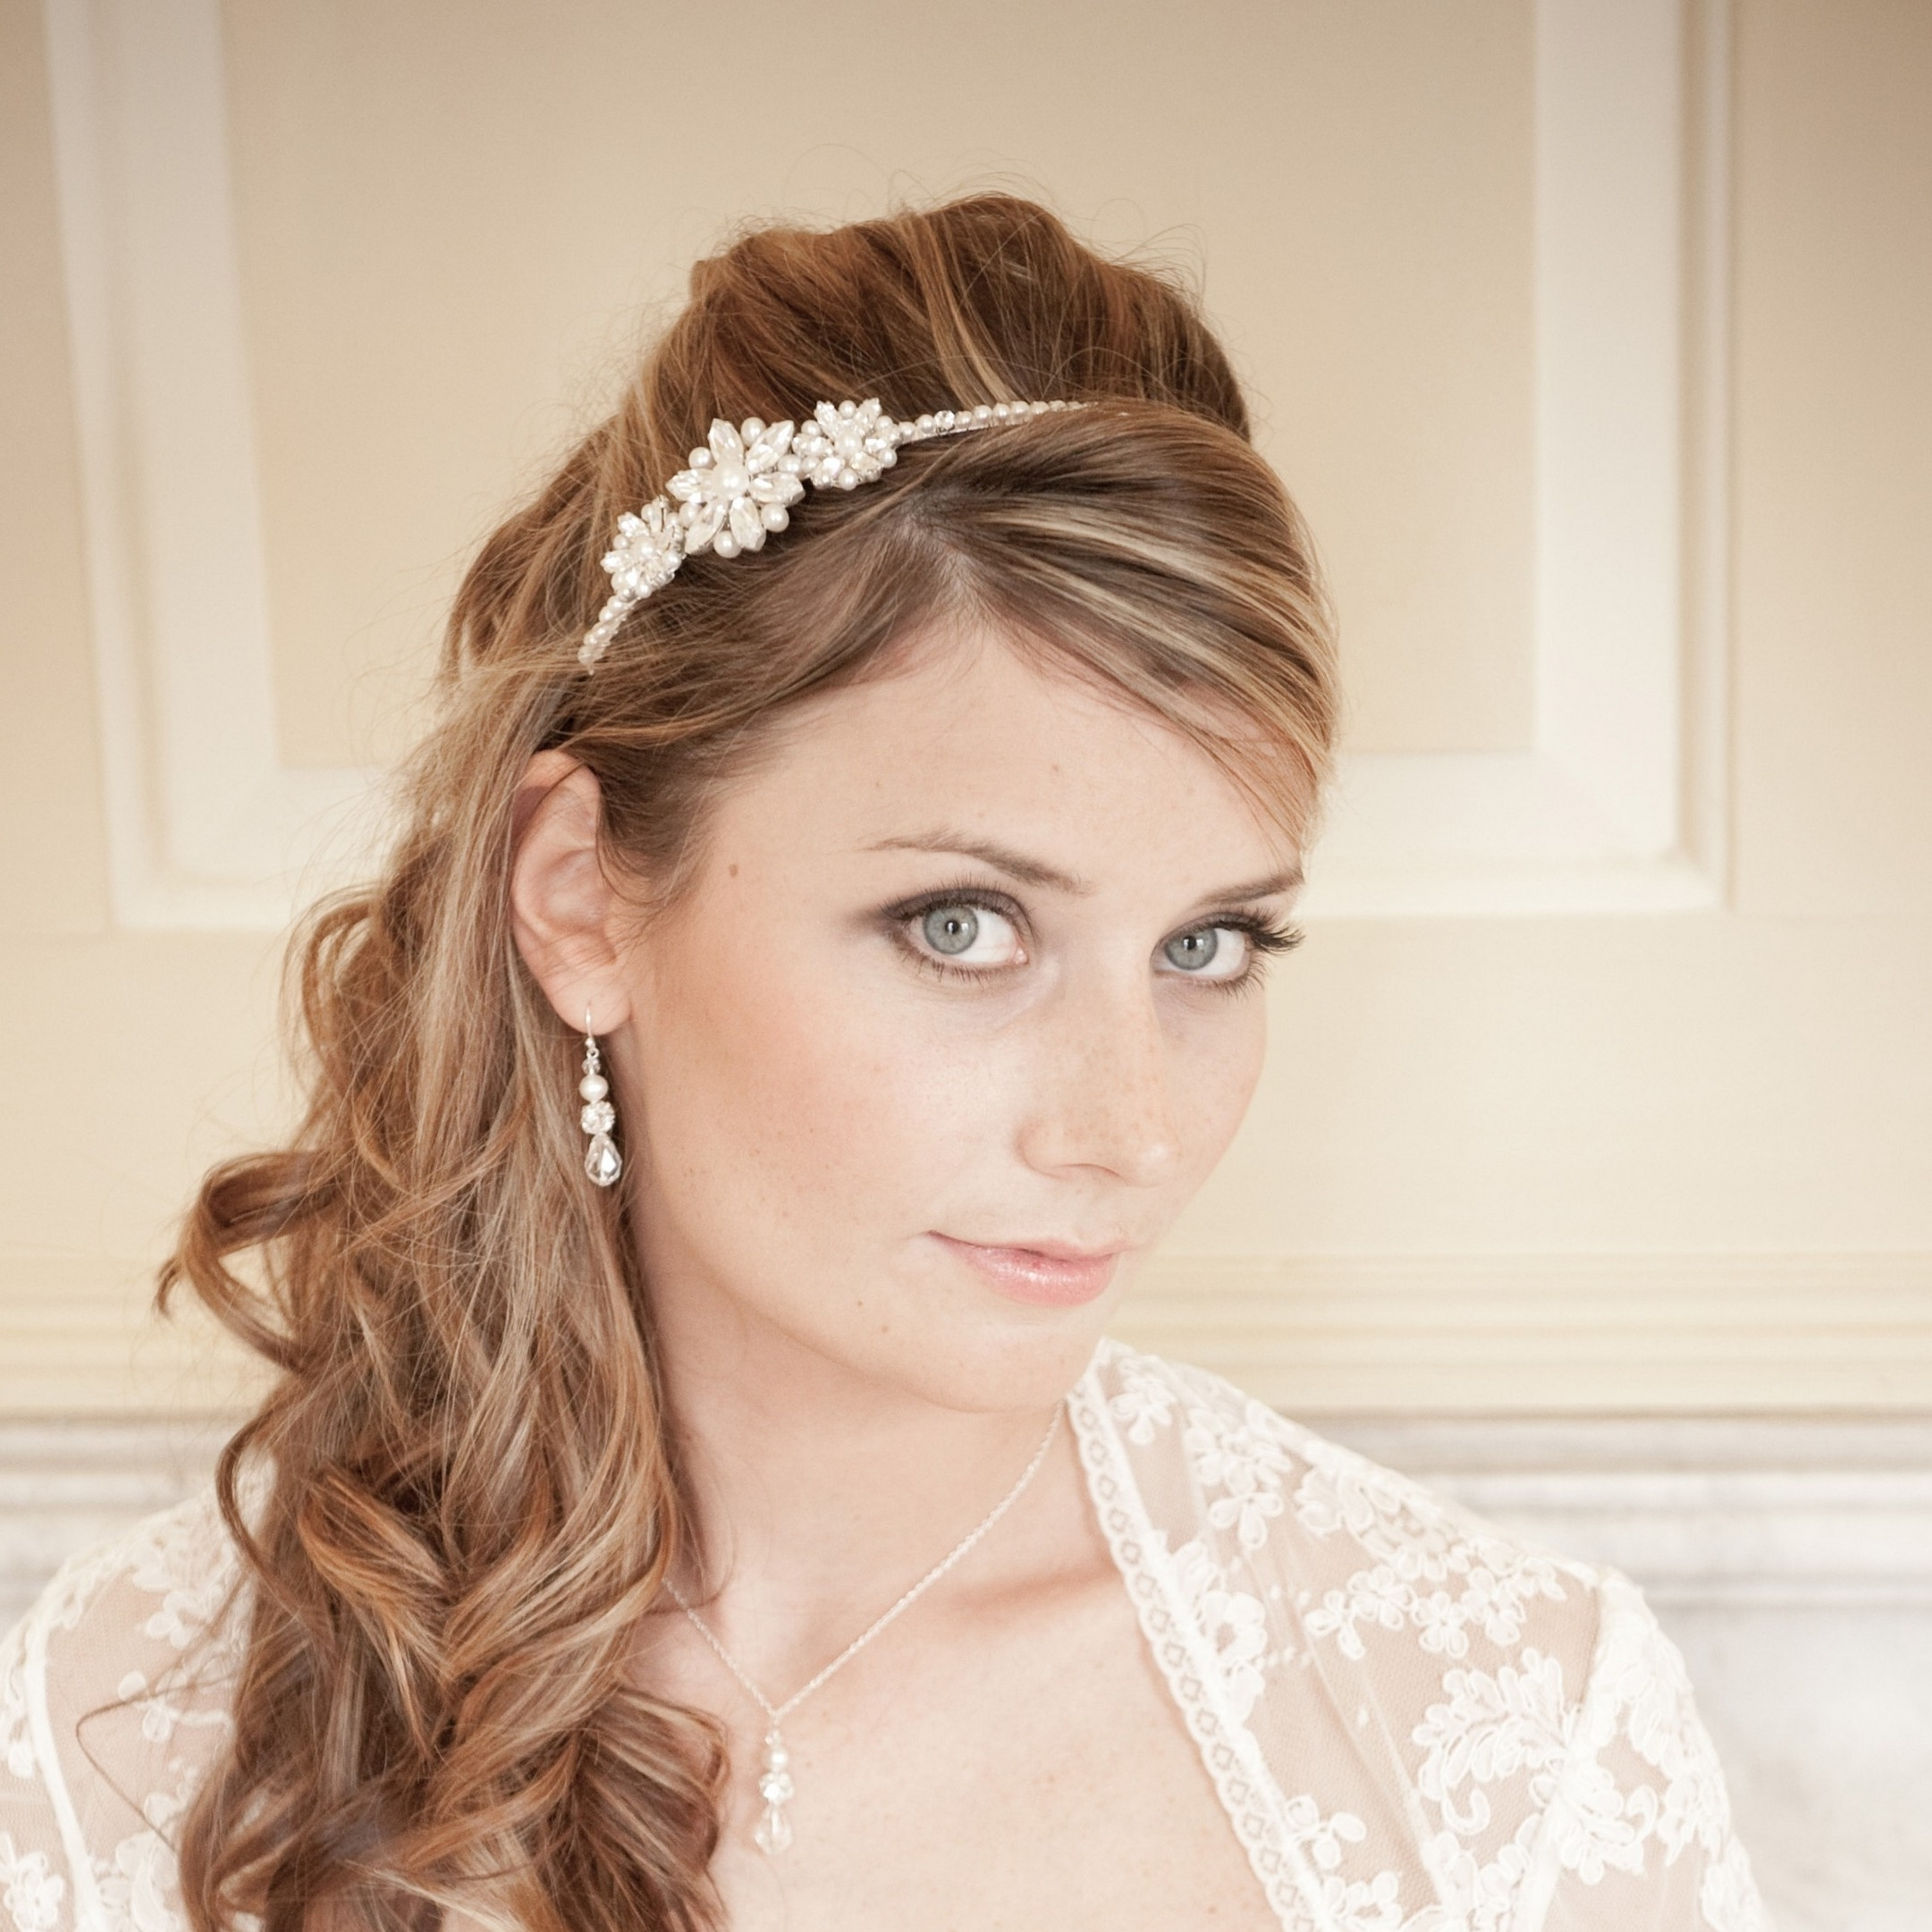 Interesting Bride Hairstyles Down About Wedding Hairstyles With With Regard To Popular Wedding Hairstyles With Headband (View 7 of 15)